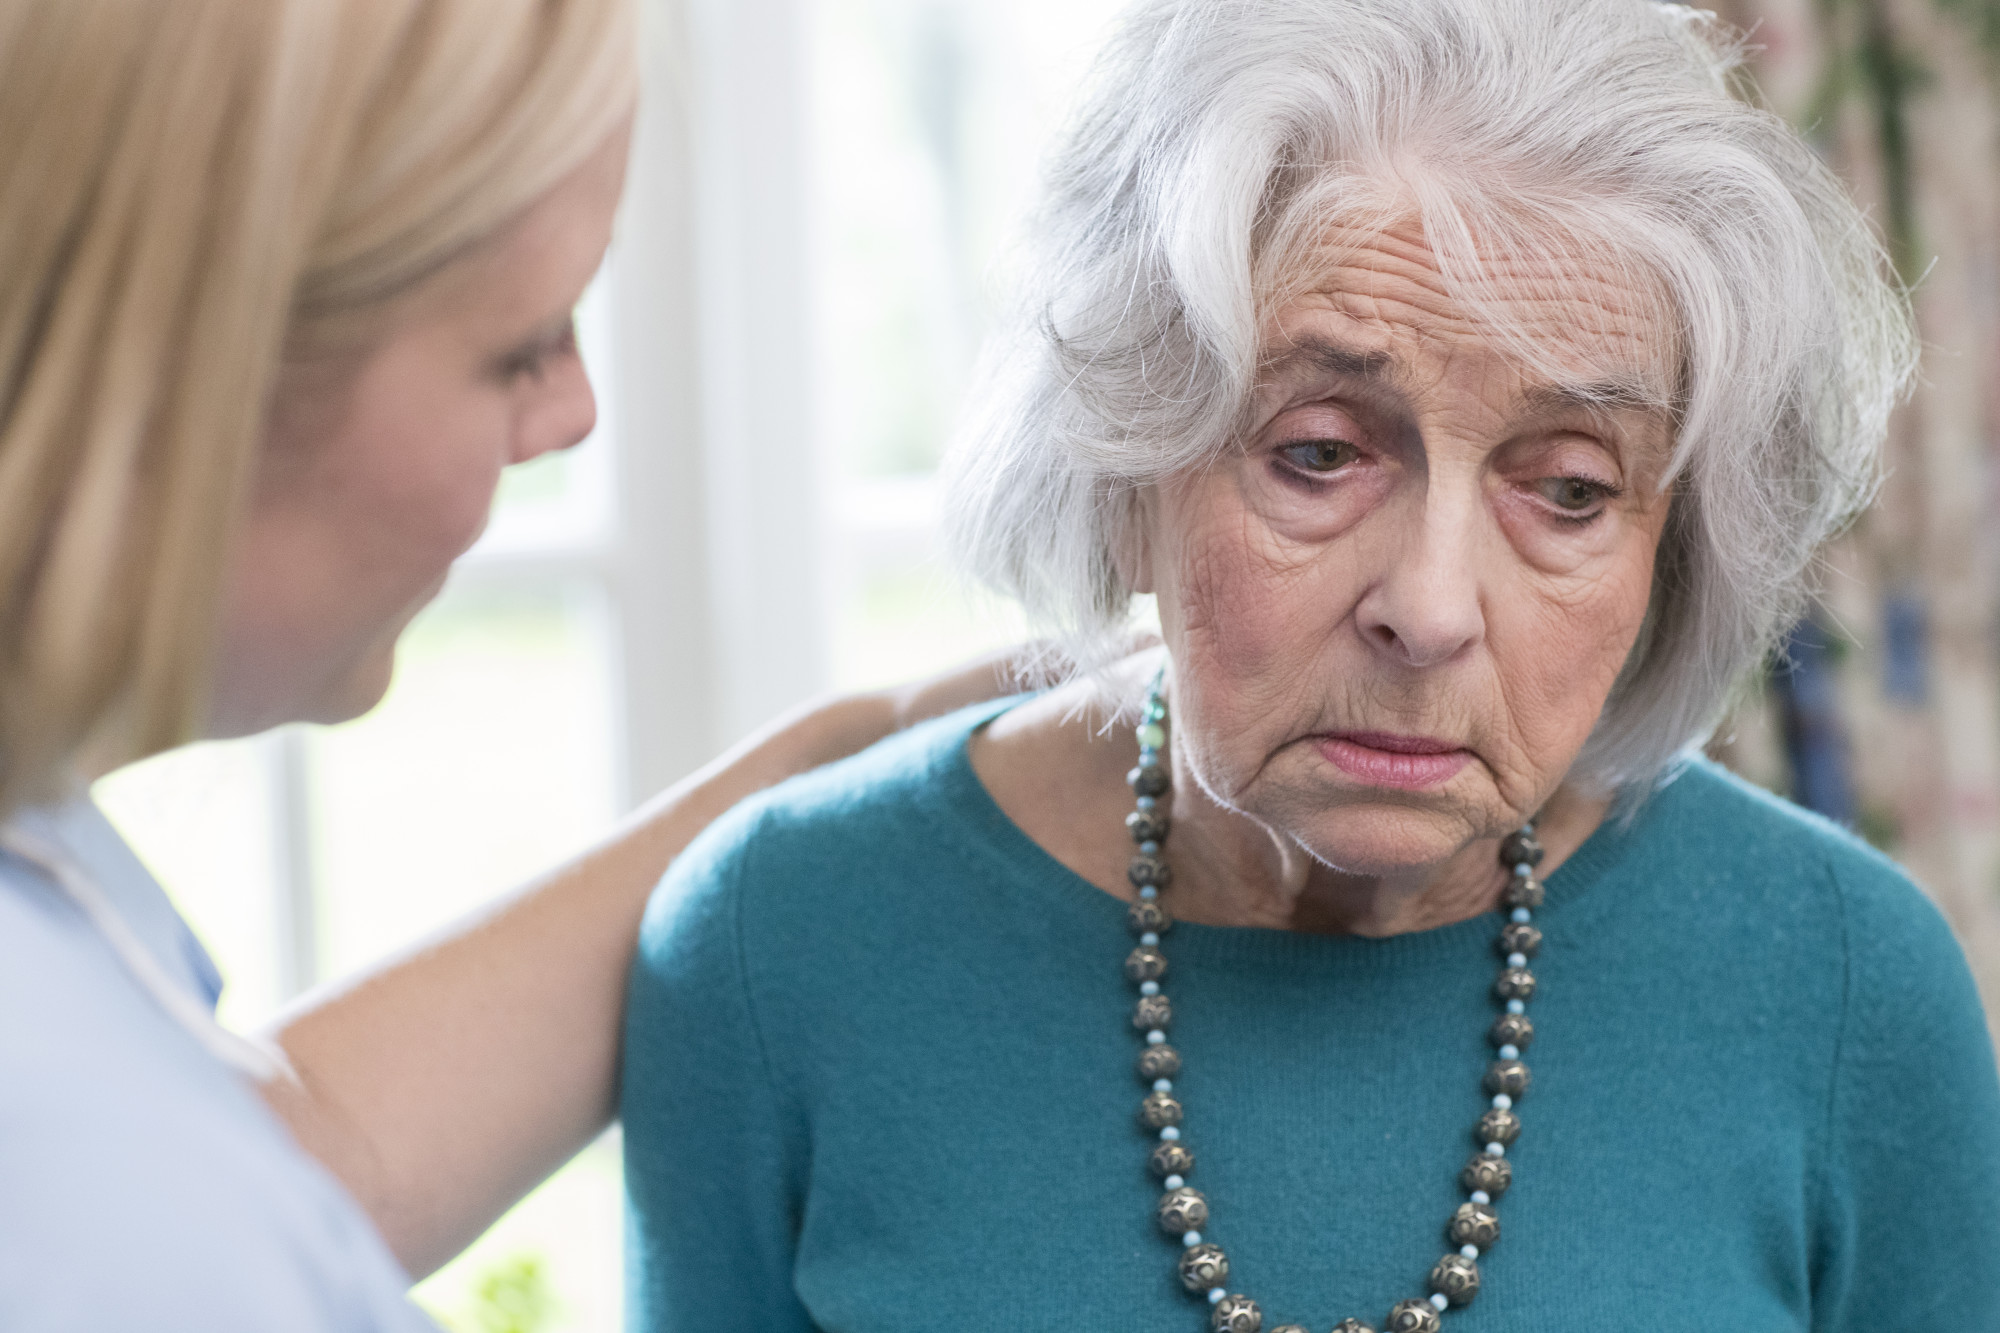 Care Worker Talking To Depressed Senior Woman At Home